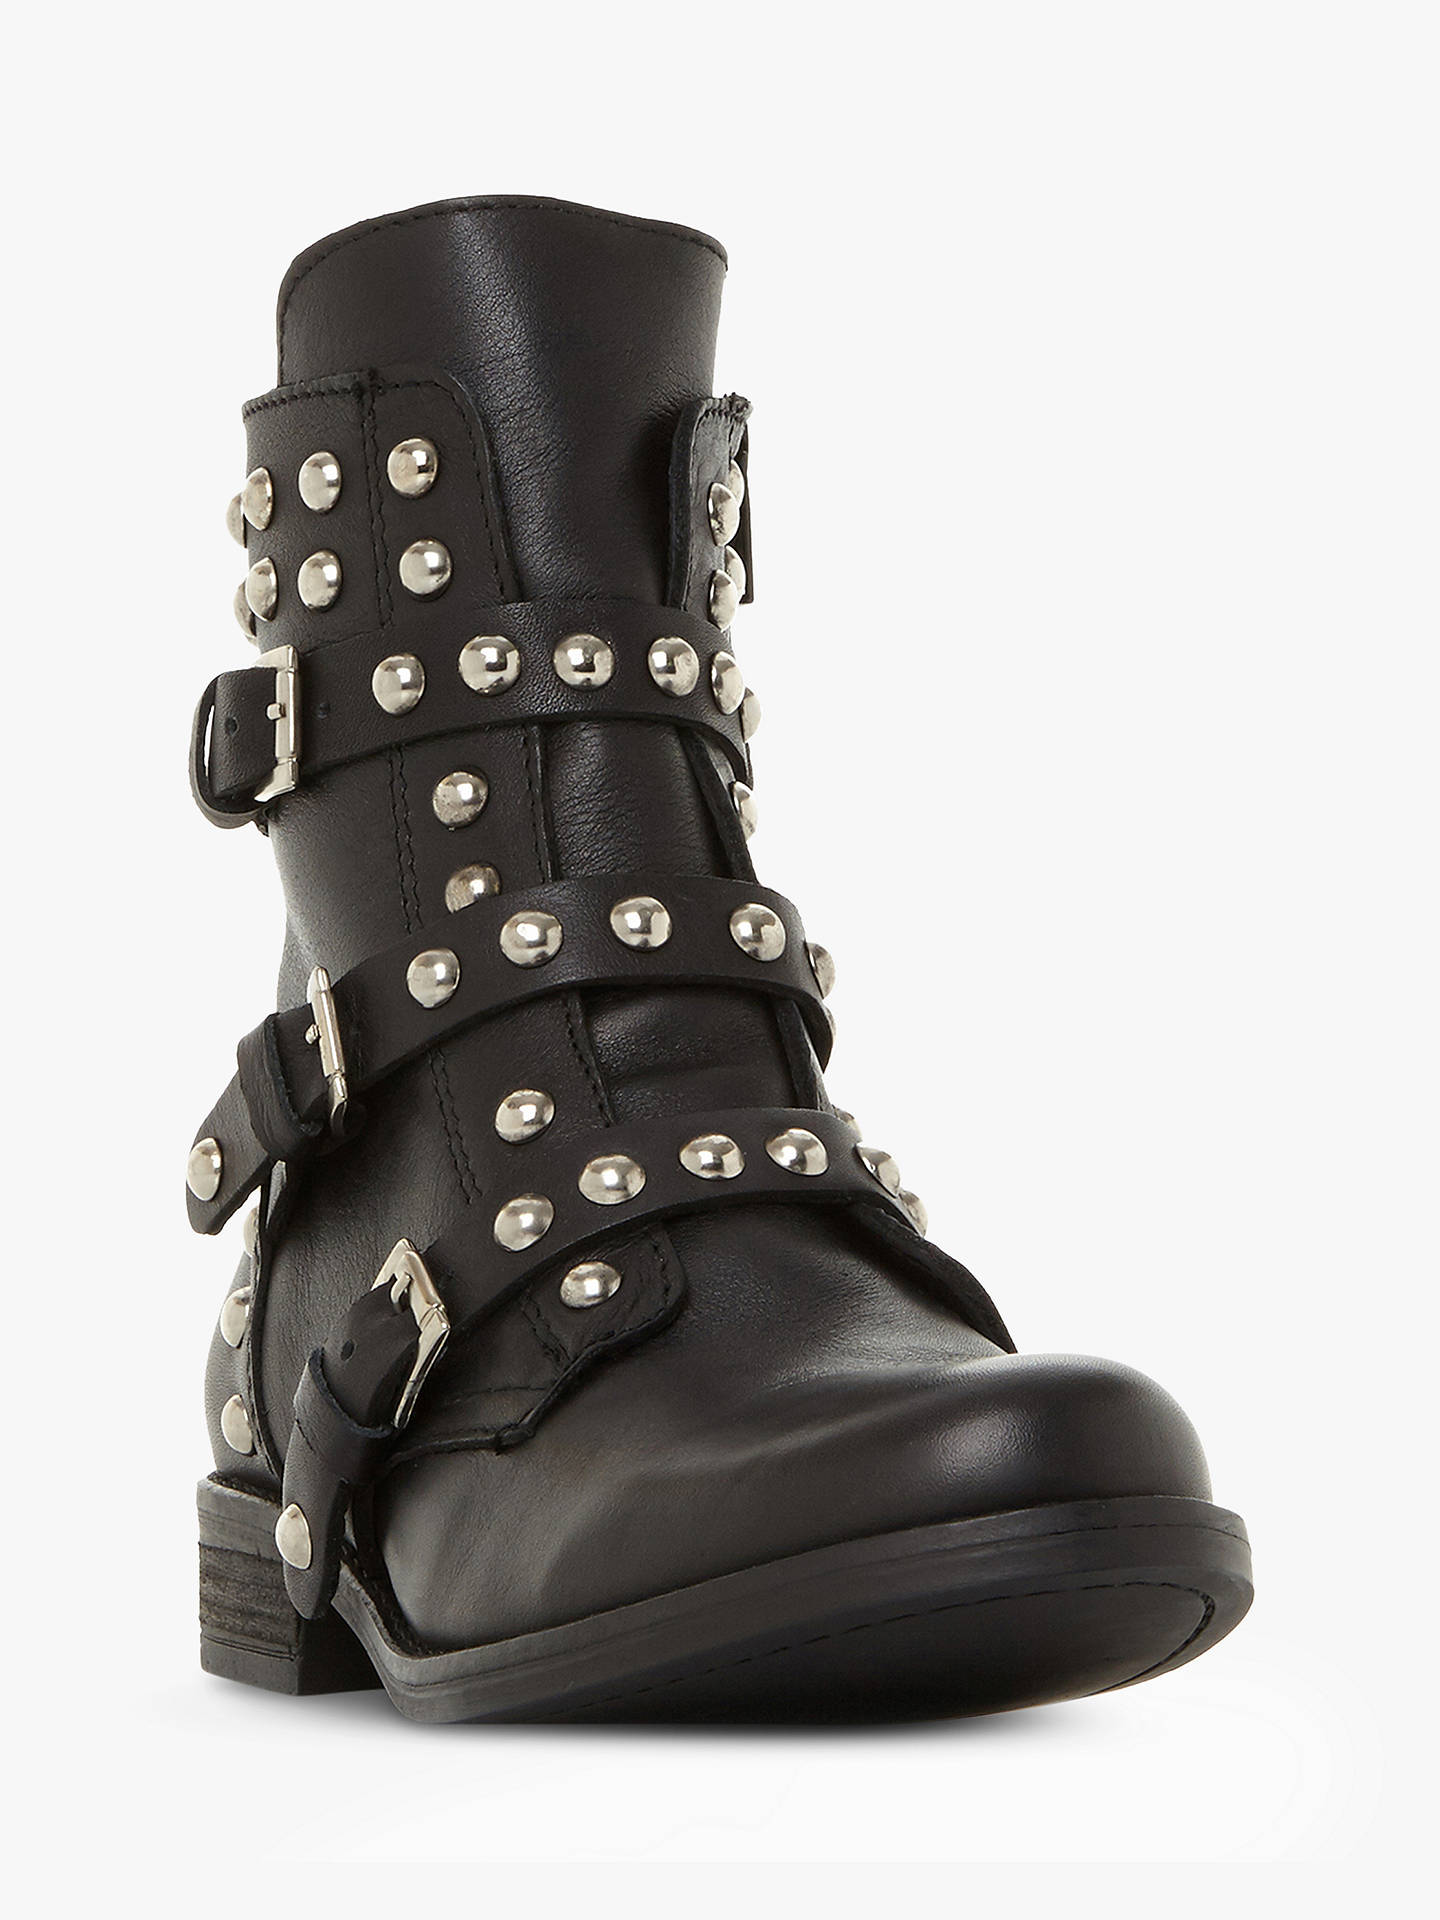 Buy Steve Madden Spunky Ankle Boots, Black Leather, 3 Online at johnlewis.com